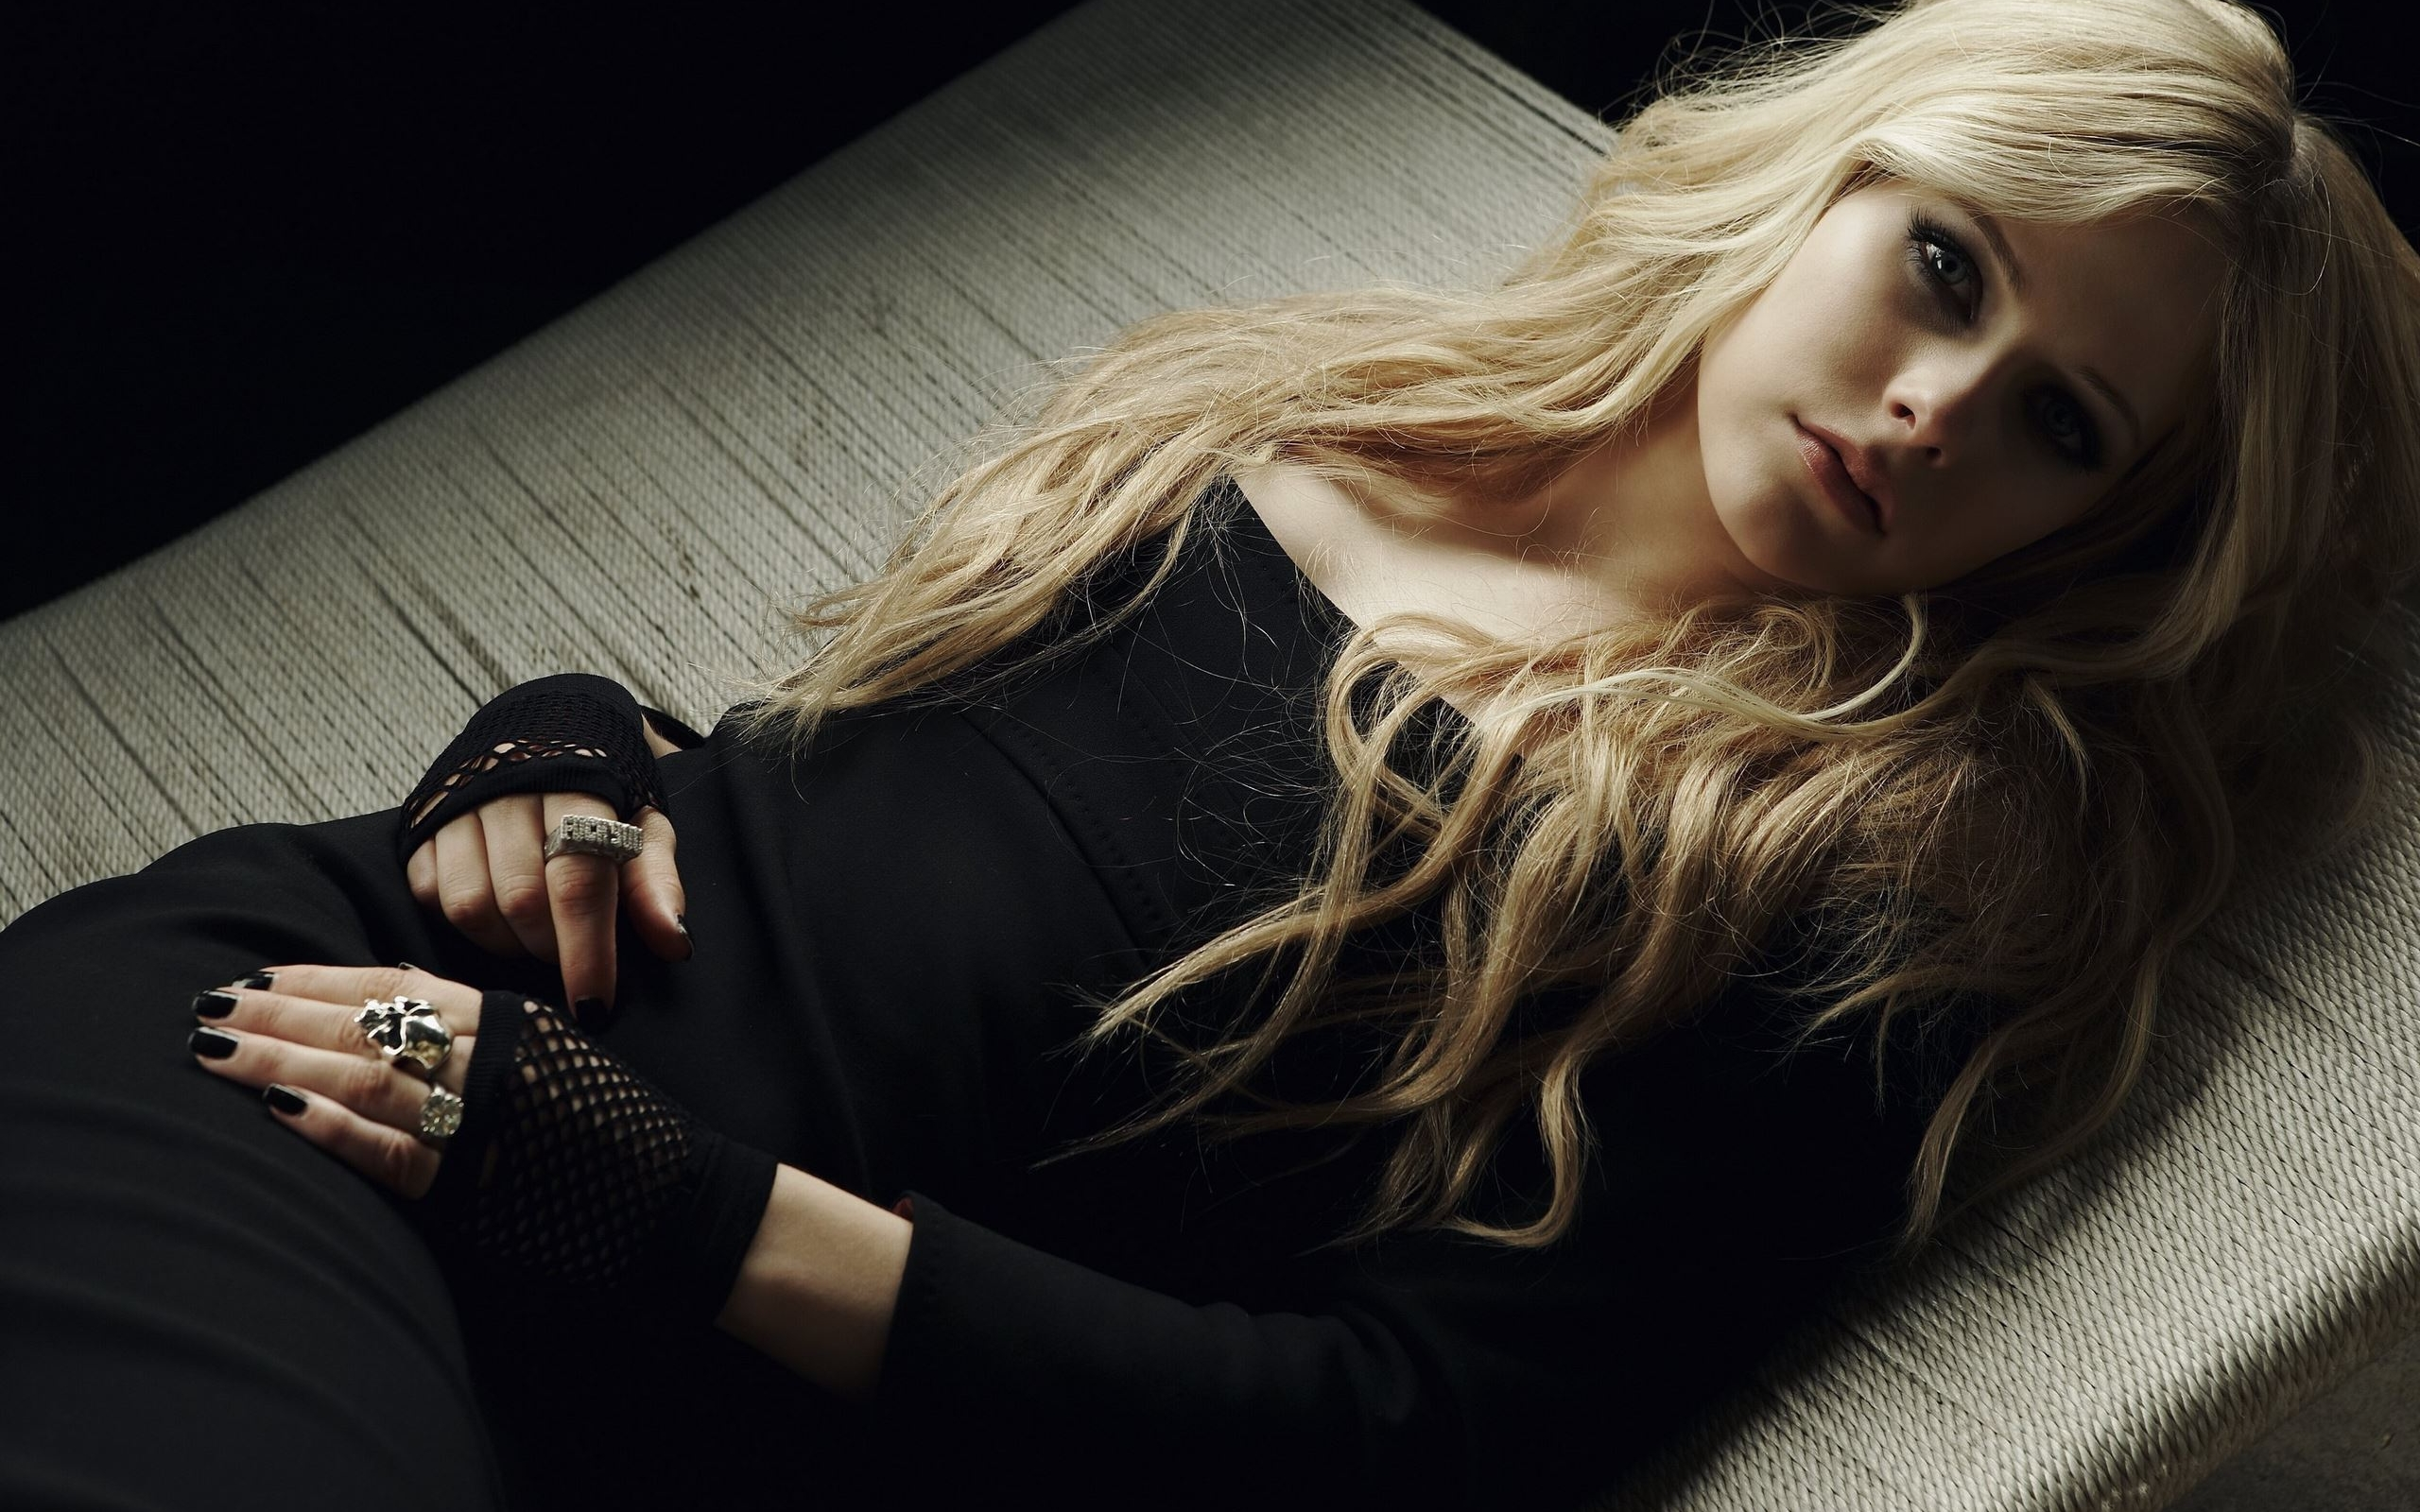 Avril Lavigne 1 Wallpapers: Avril Lavigne Wallpapers, Pictures, Images